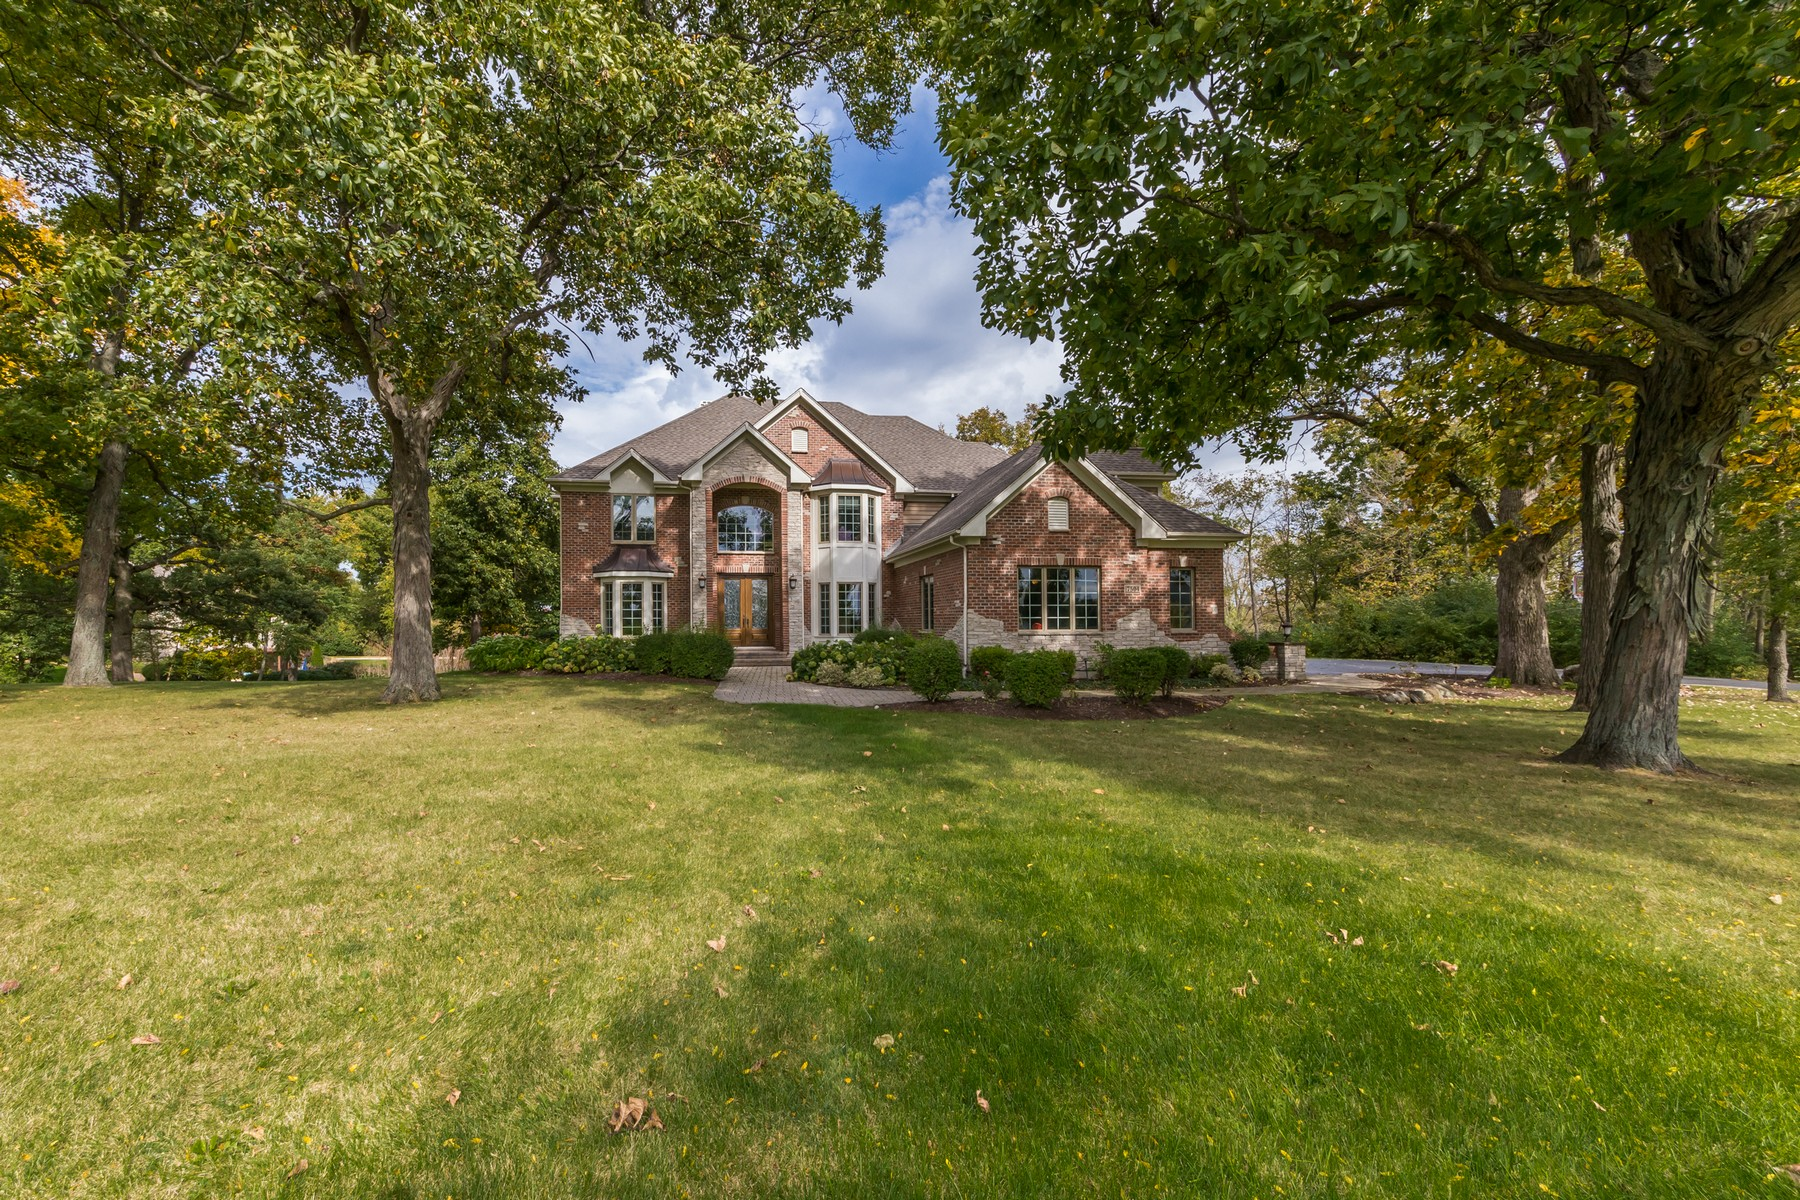 Single Family Home for Sale at Magnificent Luxurious Living In Crystal Lake 7504 Vida Avenue Lakewood, 60014 United States